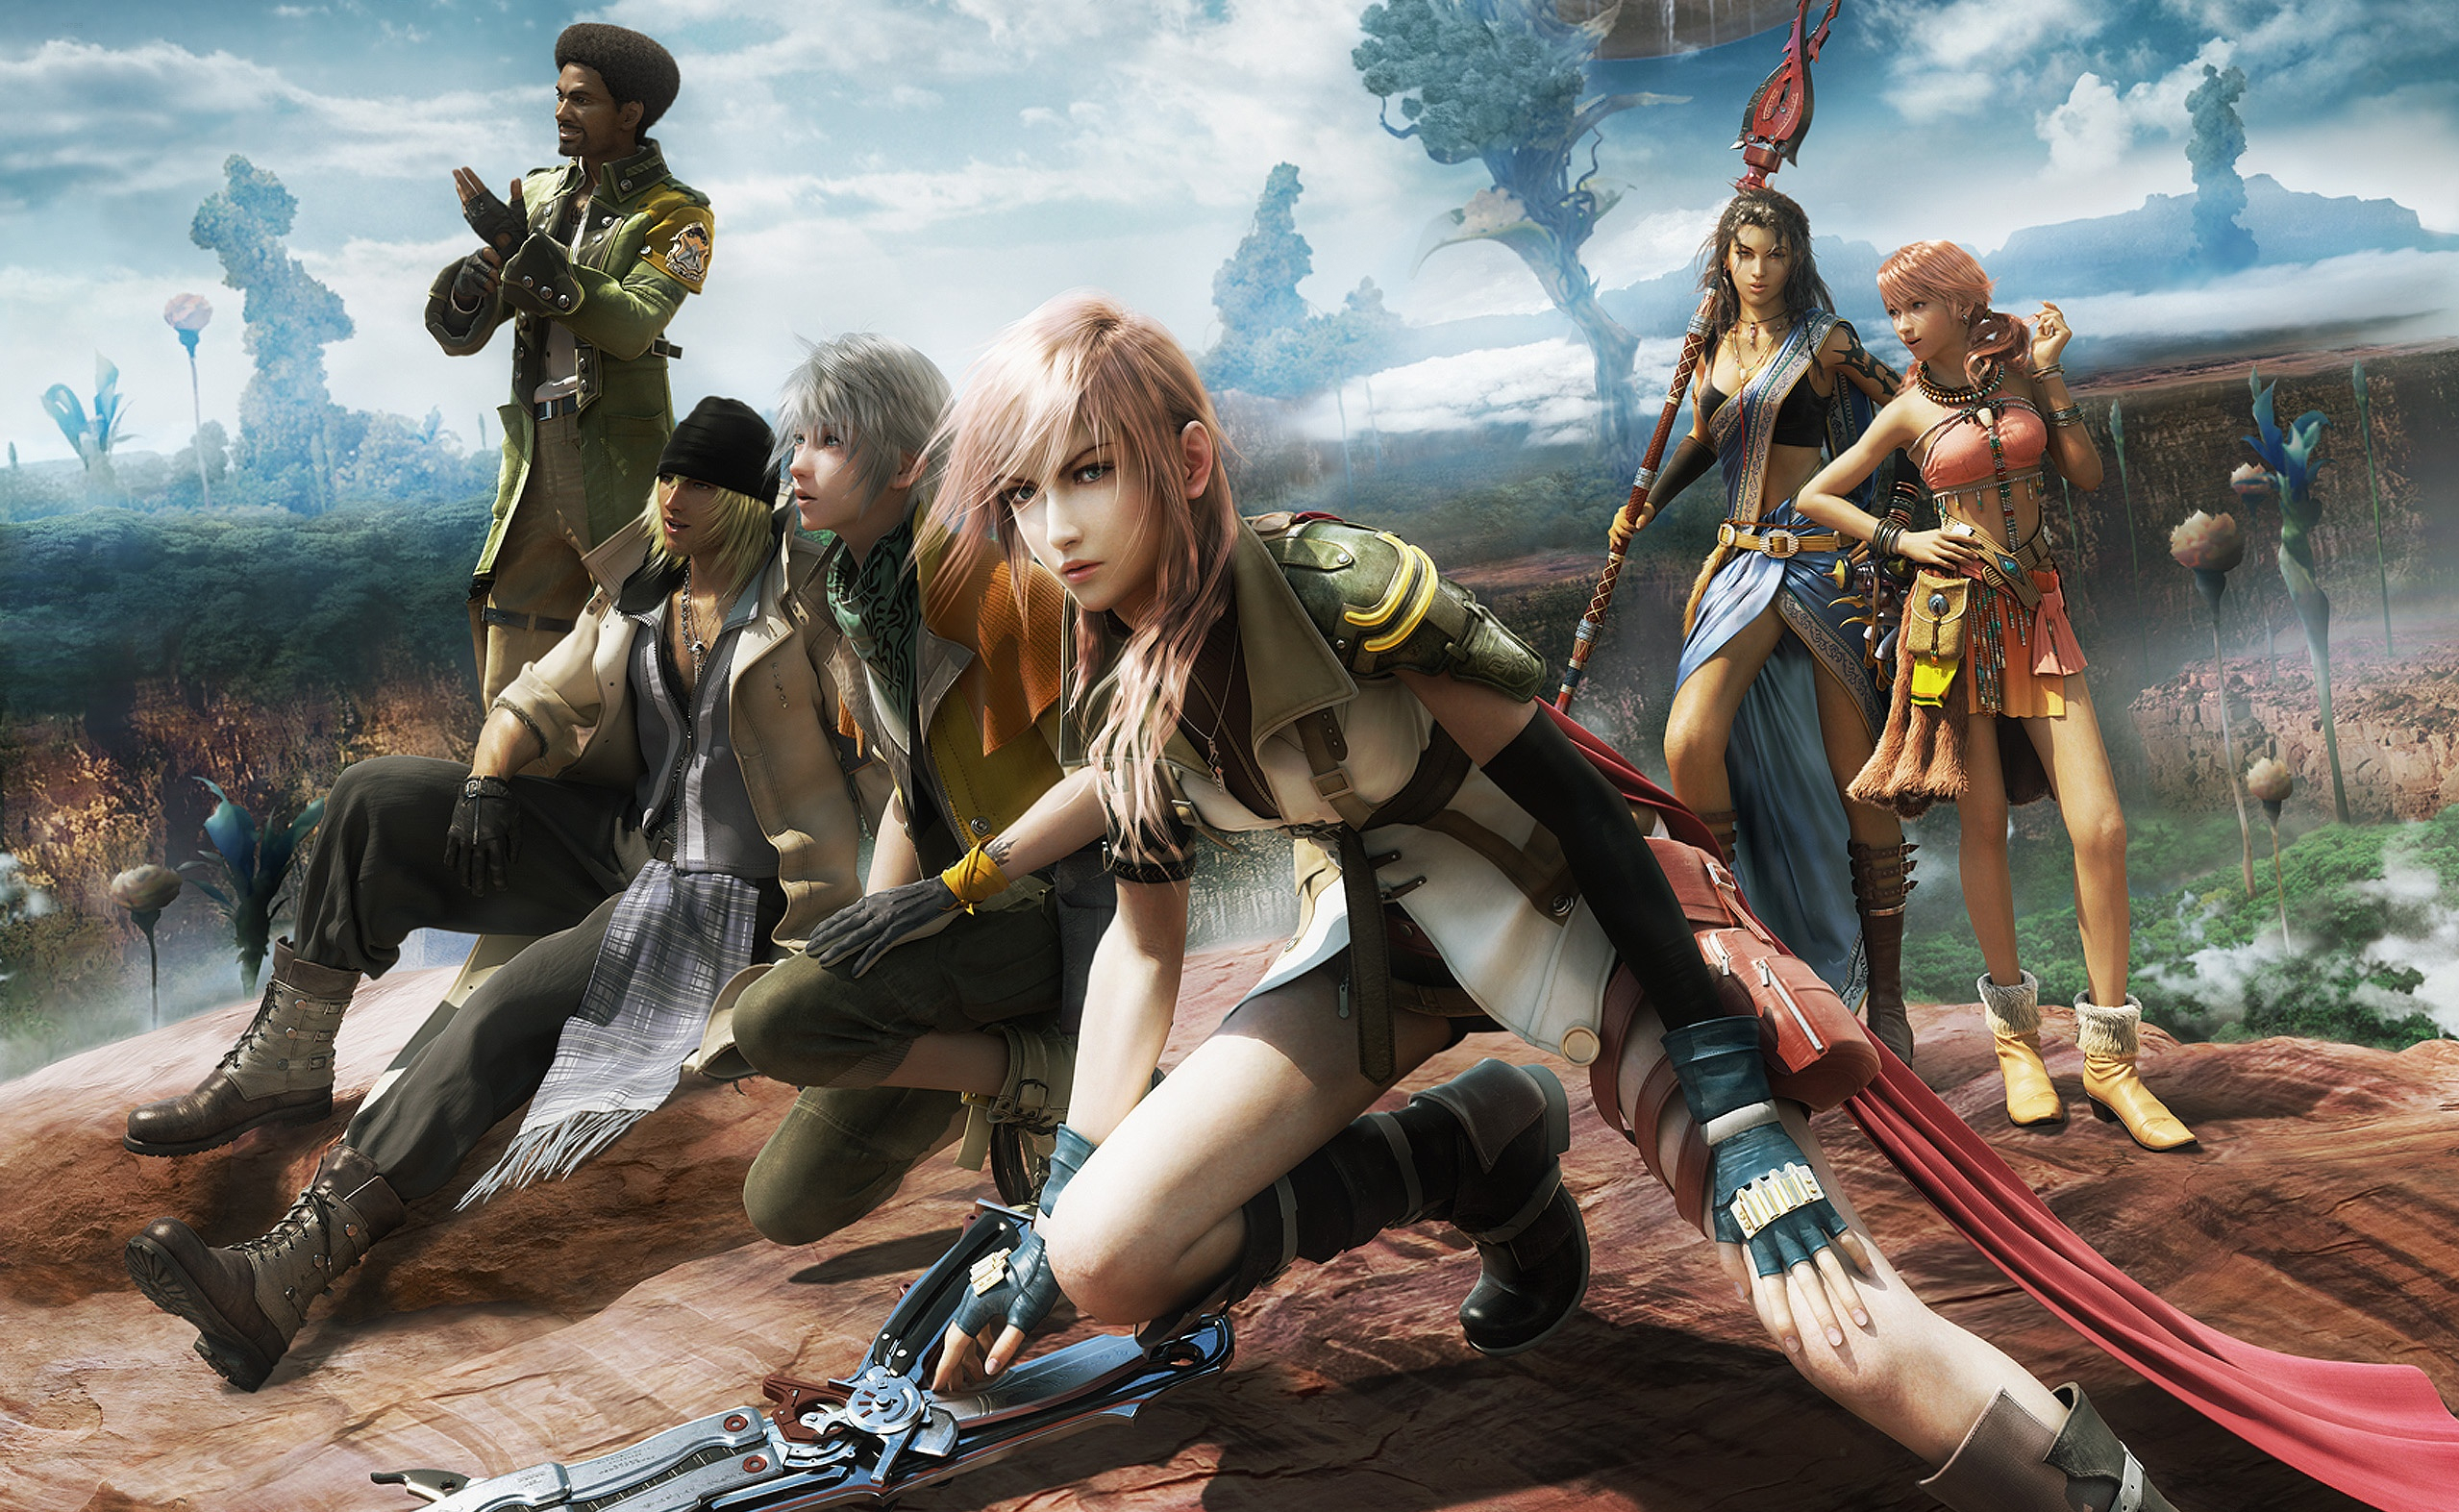 49 Final Fantasy XIII HD Wallpapers | Backgrounds - Wallpaper Abyss